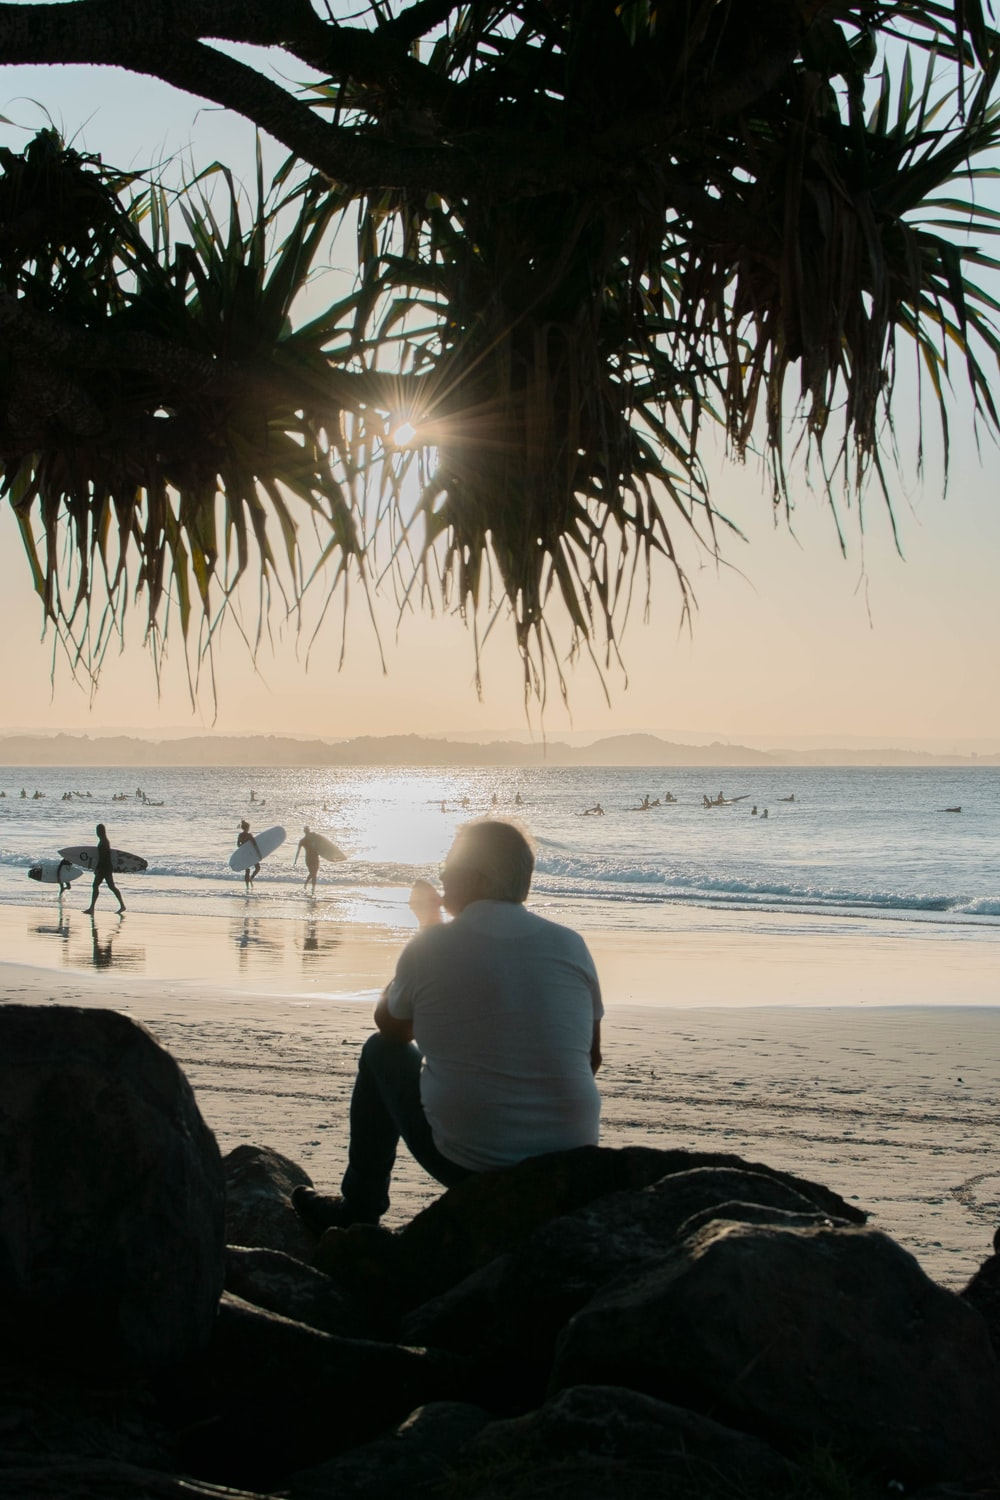 man in white shirt sitting on beach shore during sunset